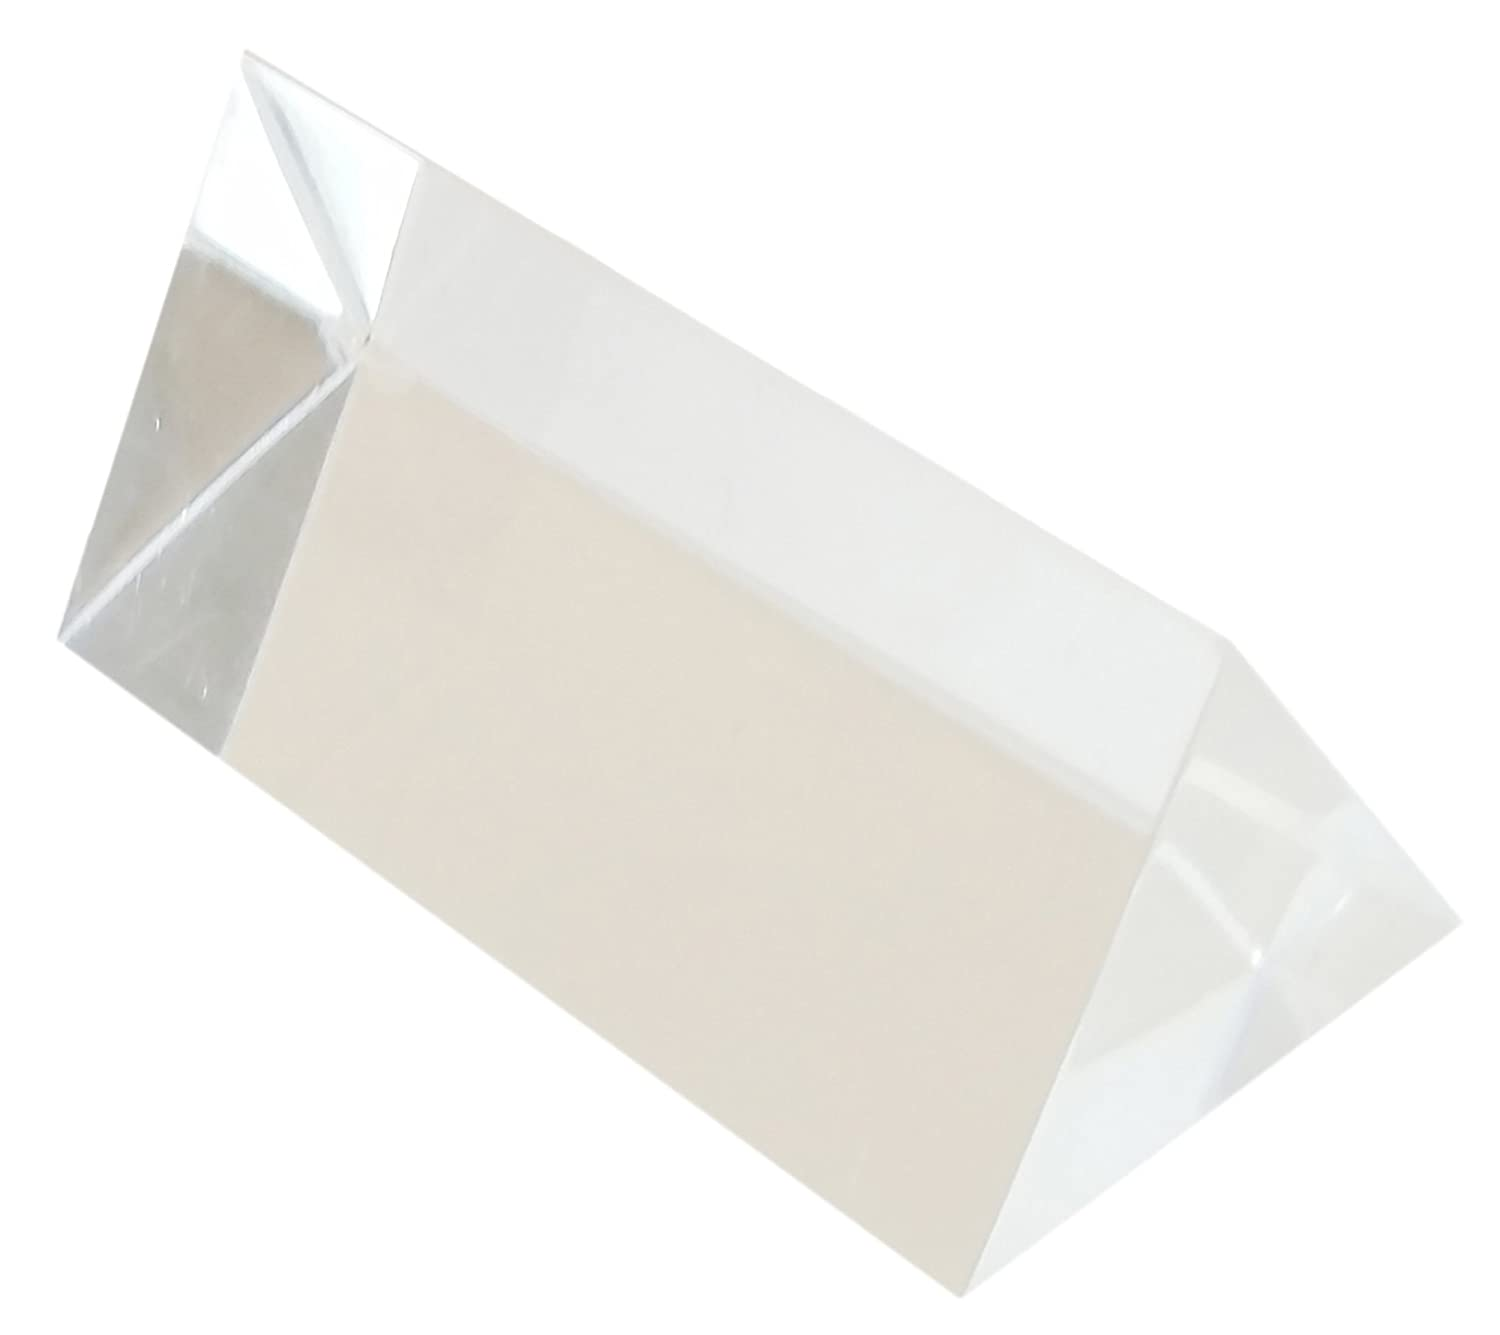 Nice GSC International 4-90974-10 Acrylic Equilateral Prism, 25mm face, 50mm Long (Pack of 10) for sale